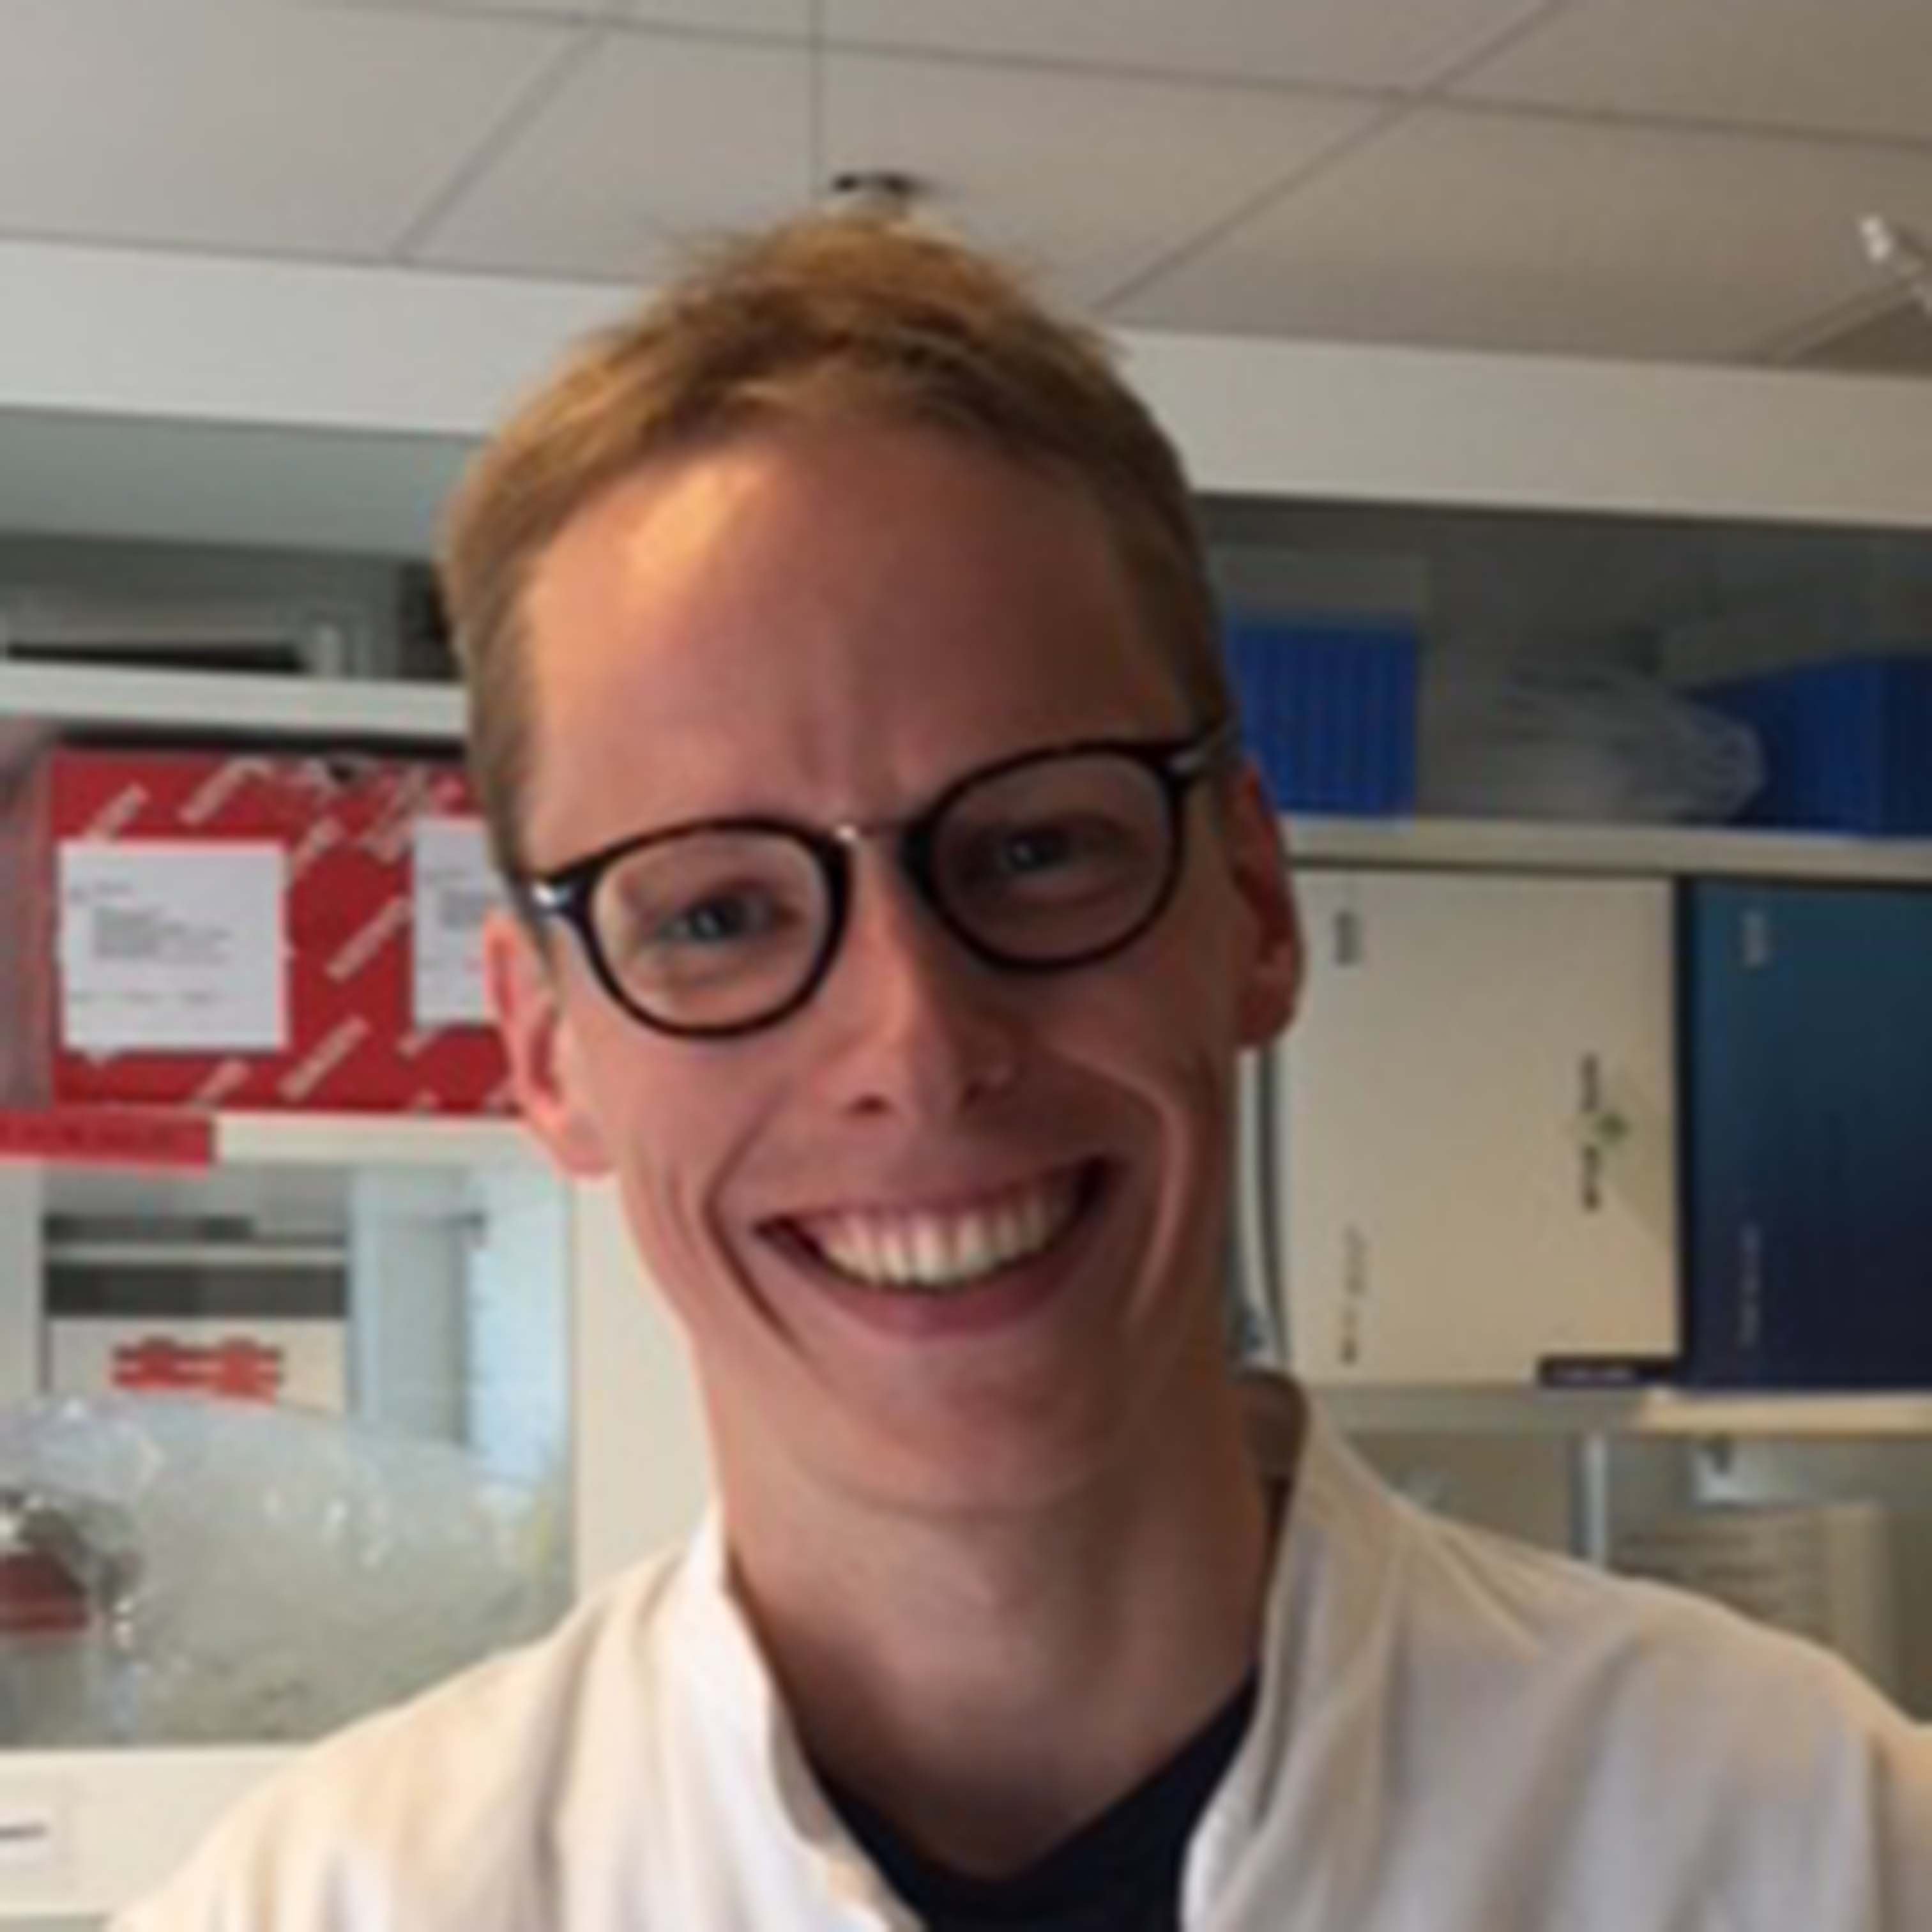 Read more about: Welcome to Niels Christian Holm Sanden - new PhD student at DynaMo